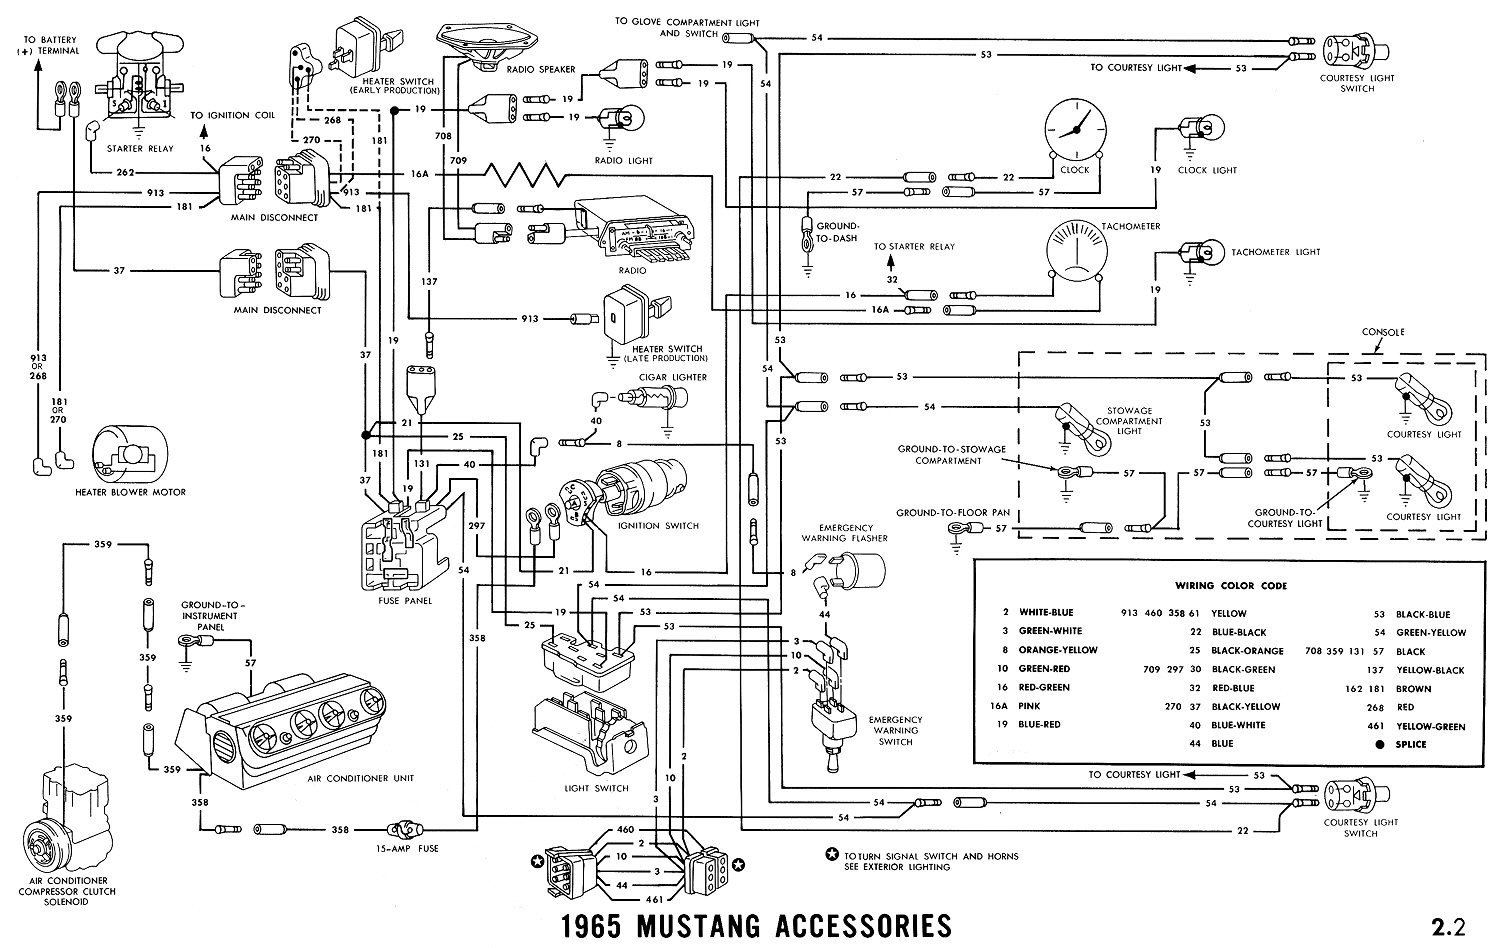 1965i 1965 mustang wiring diagrams average joe restoration 1968 mustang ignition wiring diagram at n-0.co